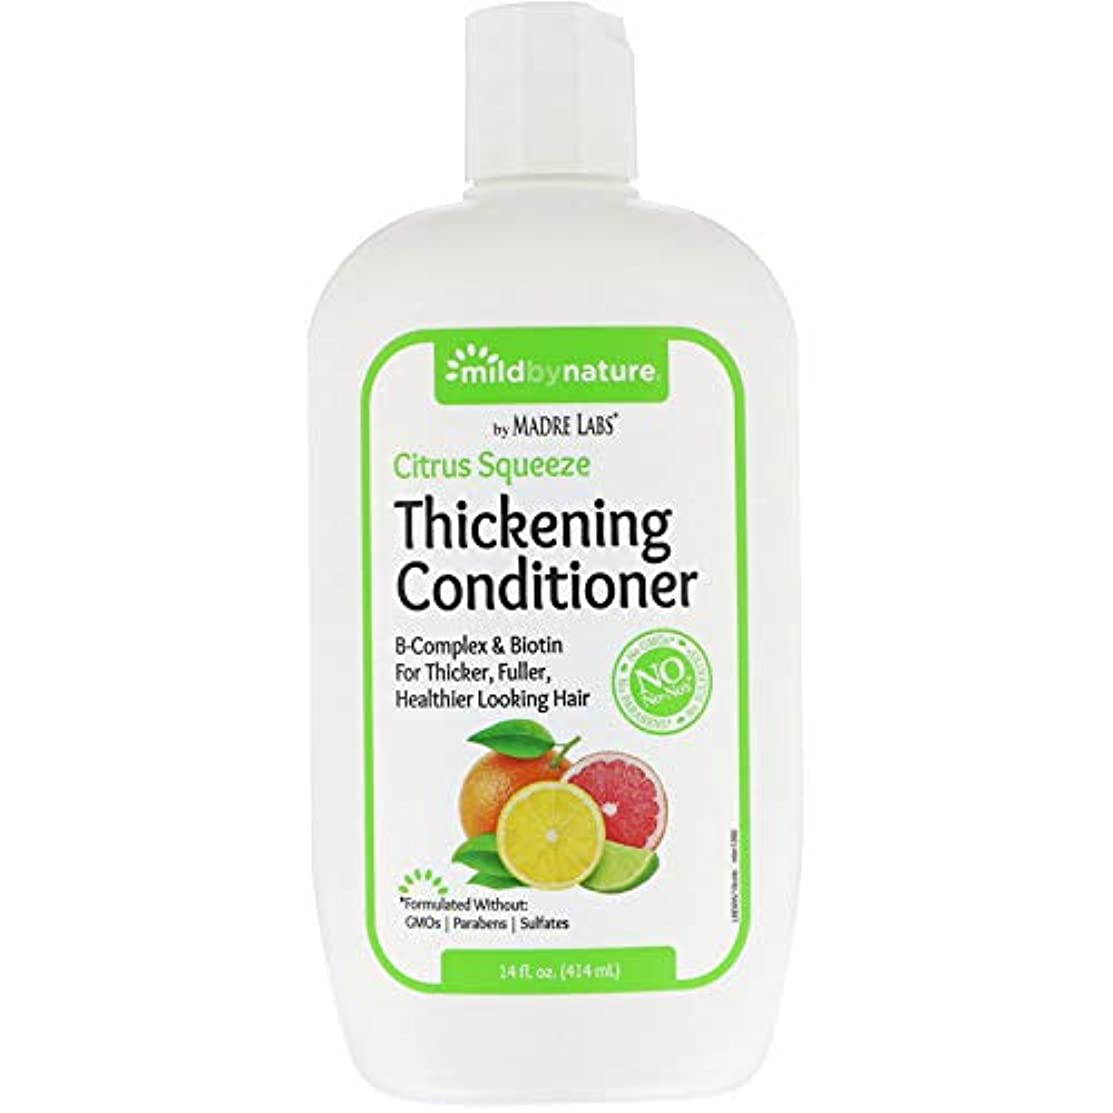 選挙スキャンダル会話Madre Labs, Thickening B-Complex + Biotin Conditioner, No Sulfates, Citrus Squeeze、14液量オンス(414 ml)